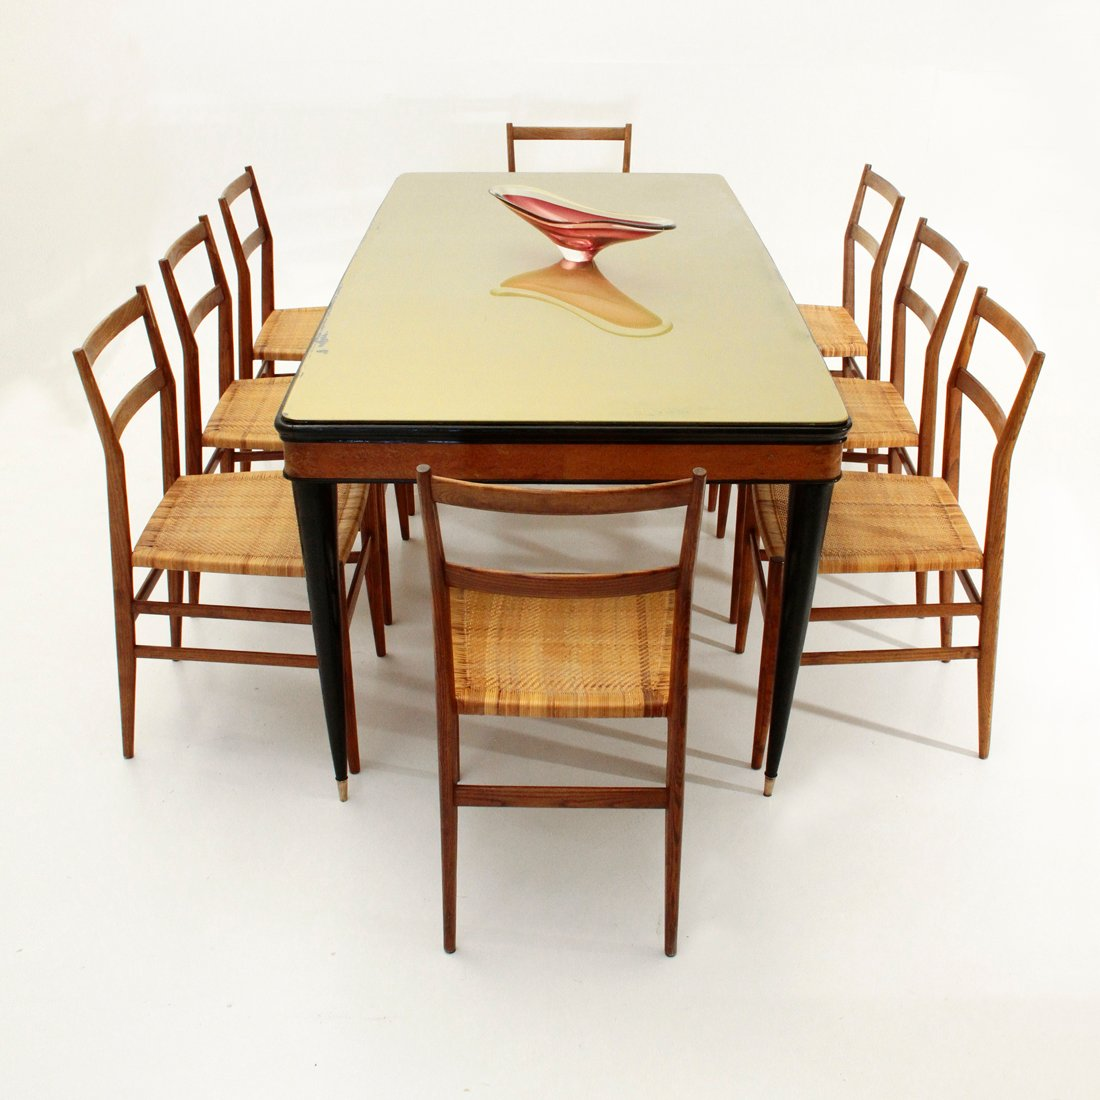 Italian dining table with glass top 1950s for sale at pamono for Italian dining table